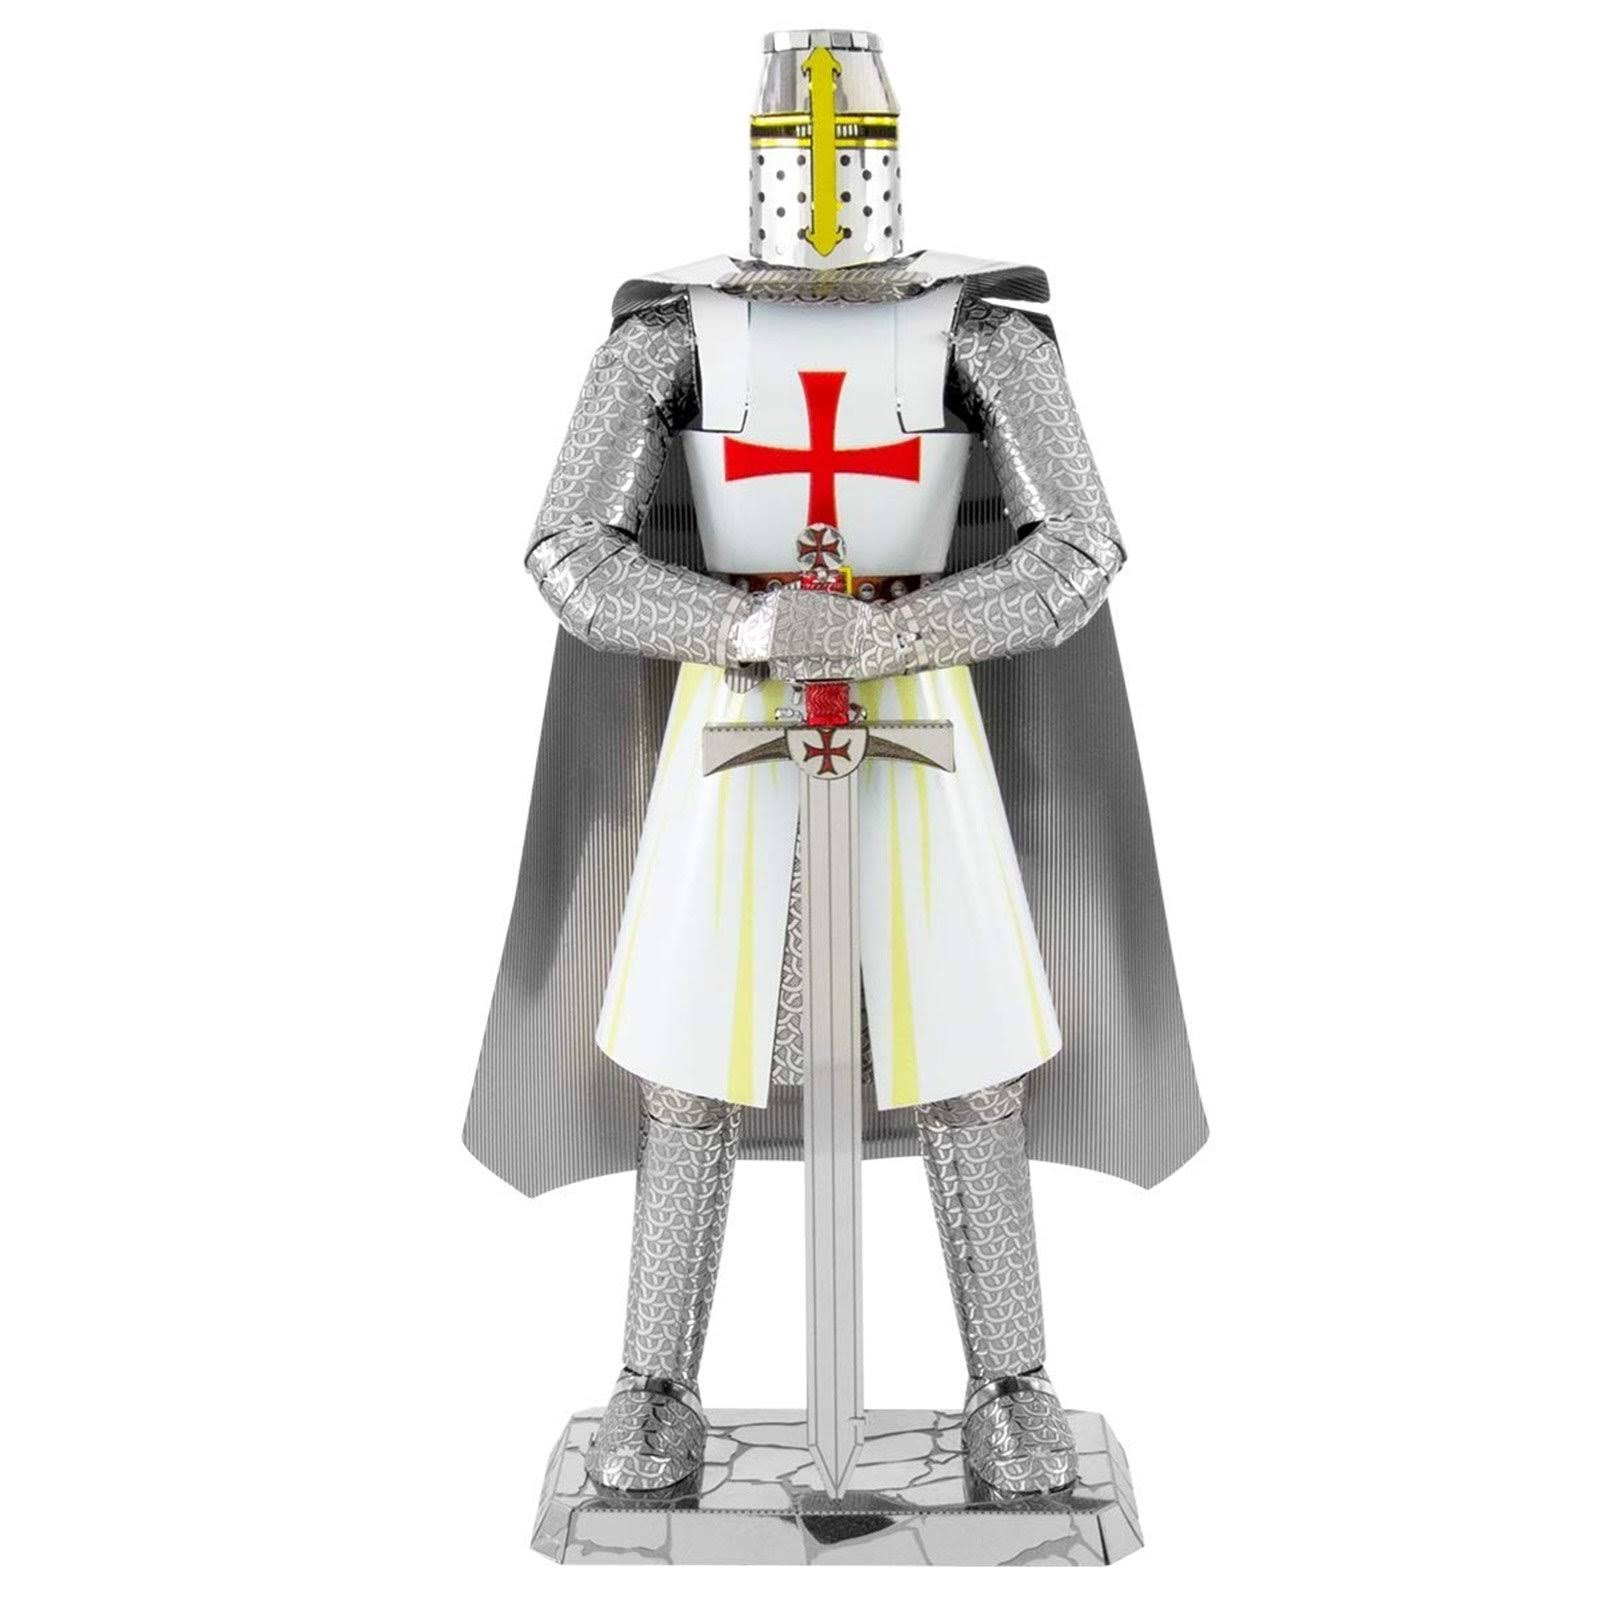 Fascinations ICONX Templar Knight 3D Metal Model Kit